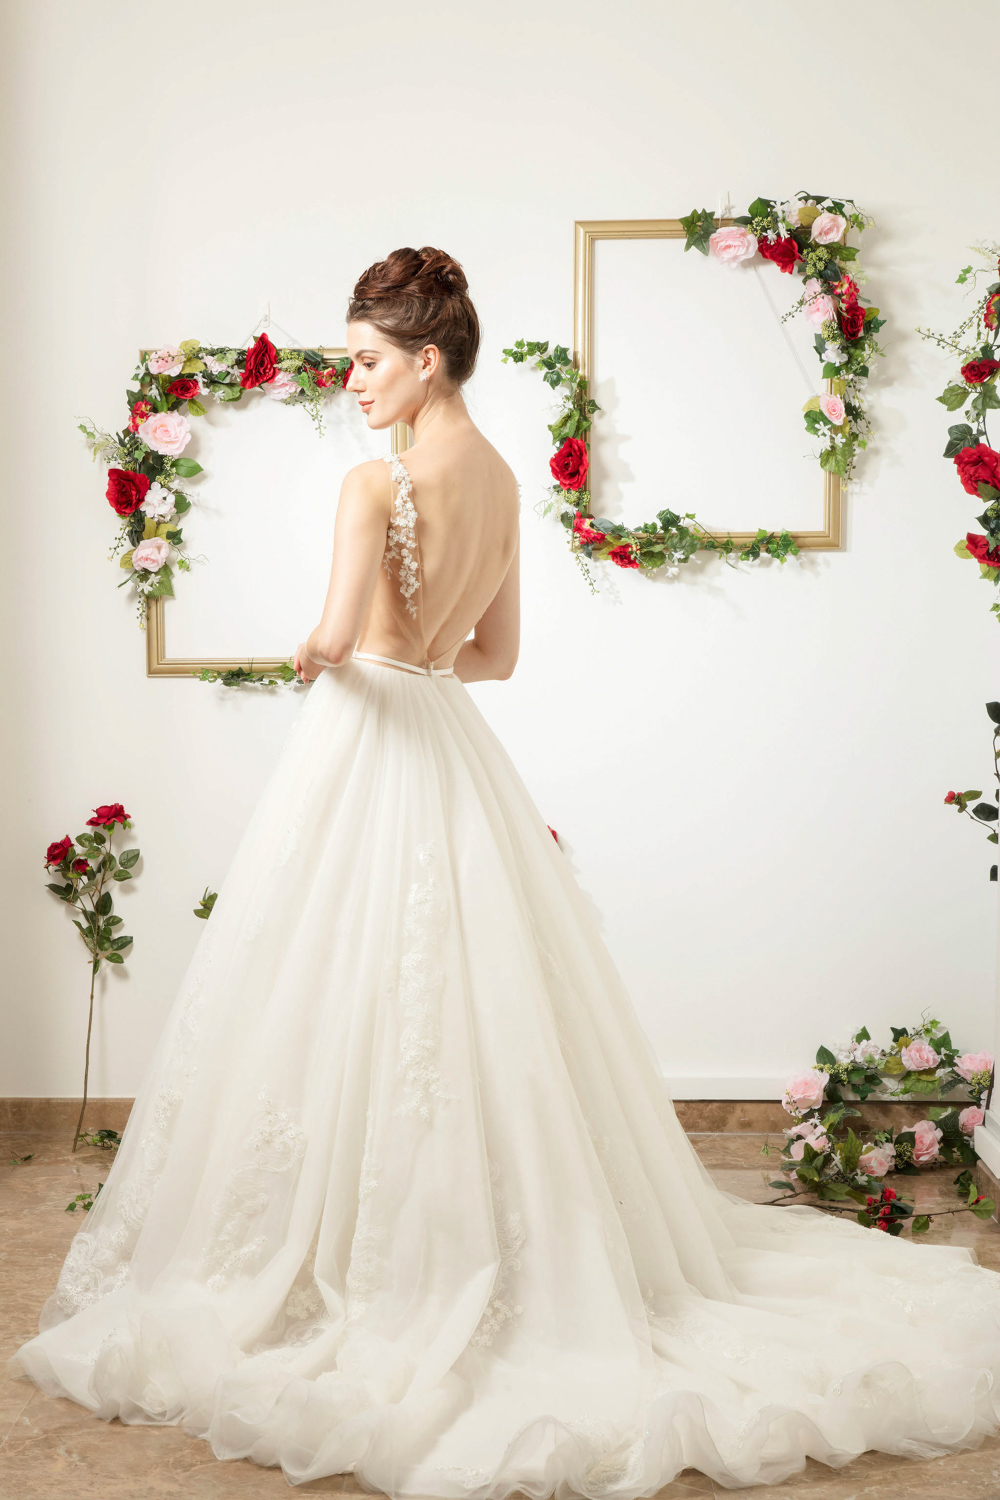 Low back wedding dress by CCM Wedding